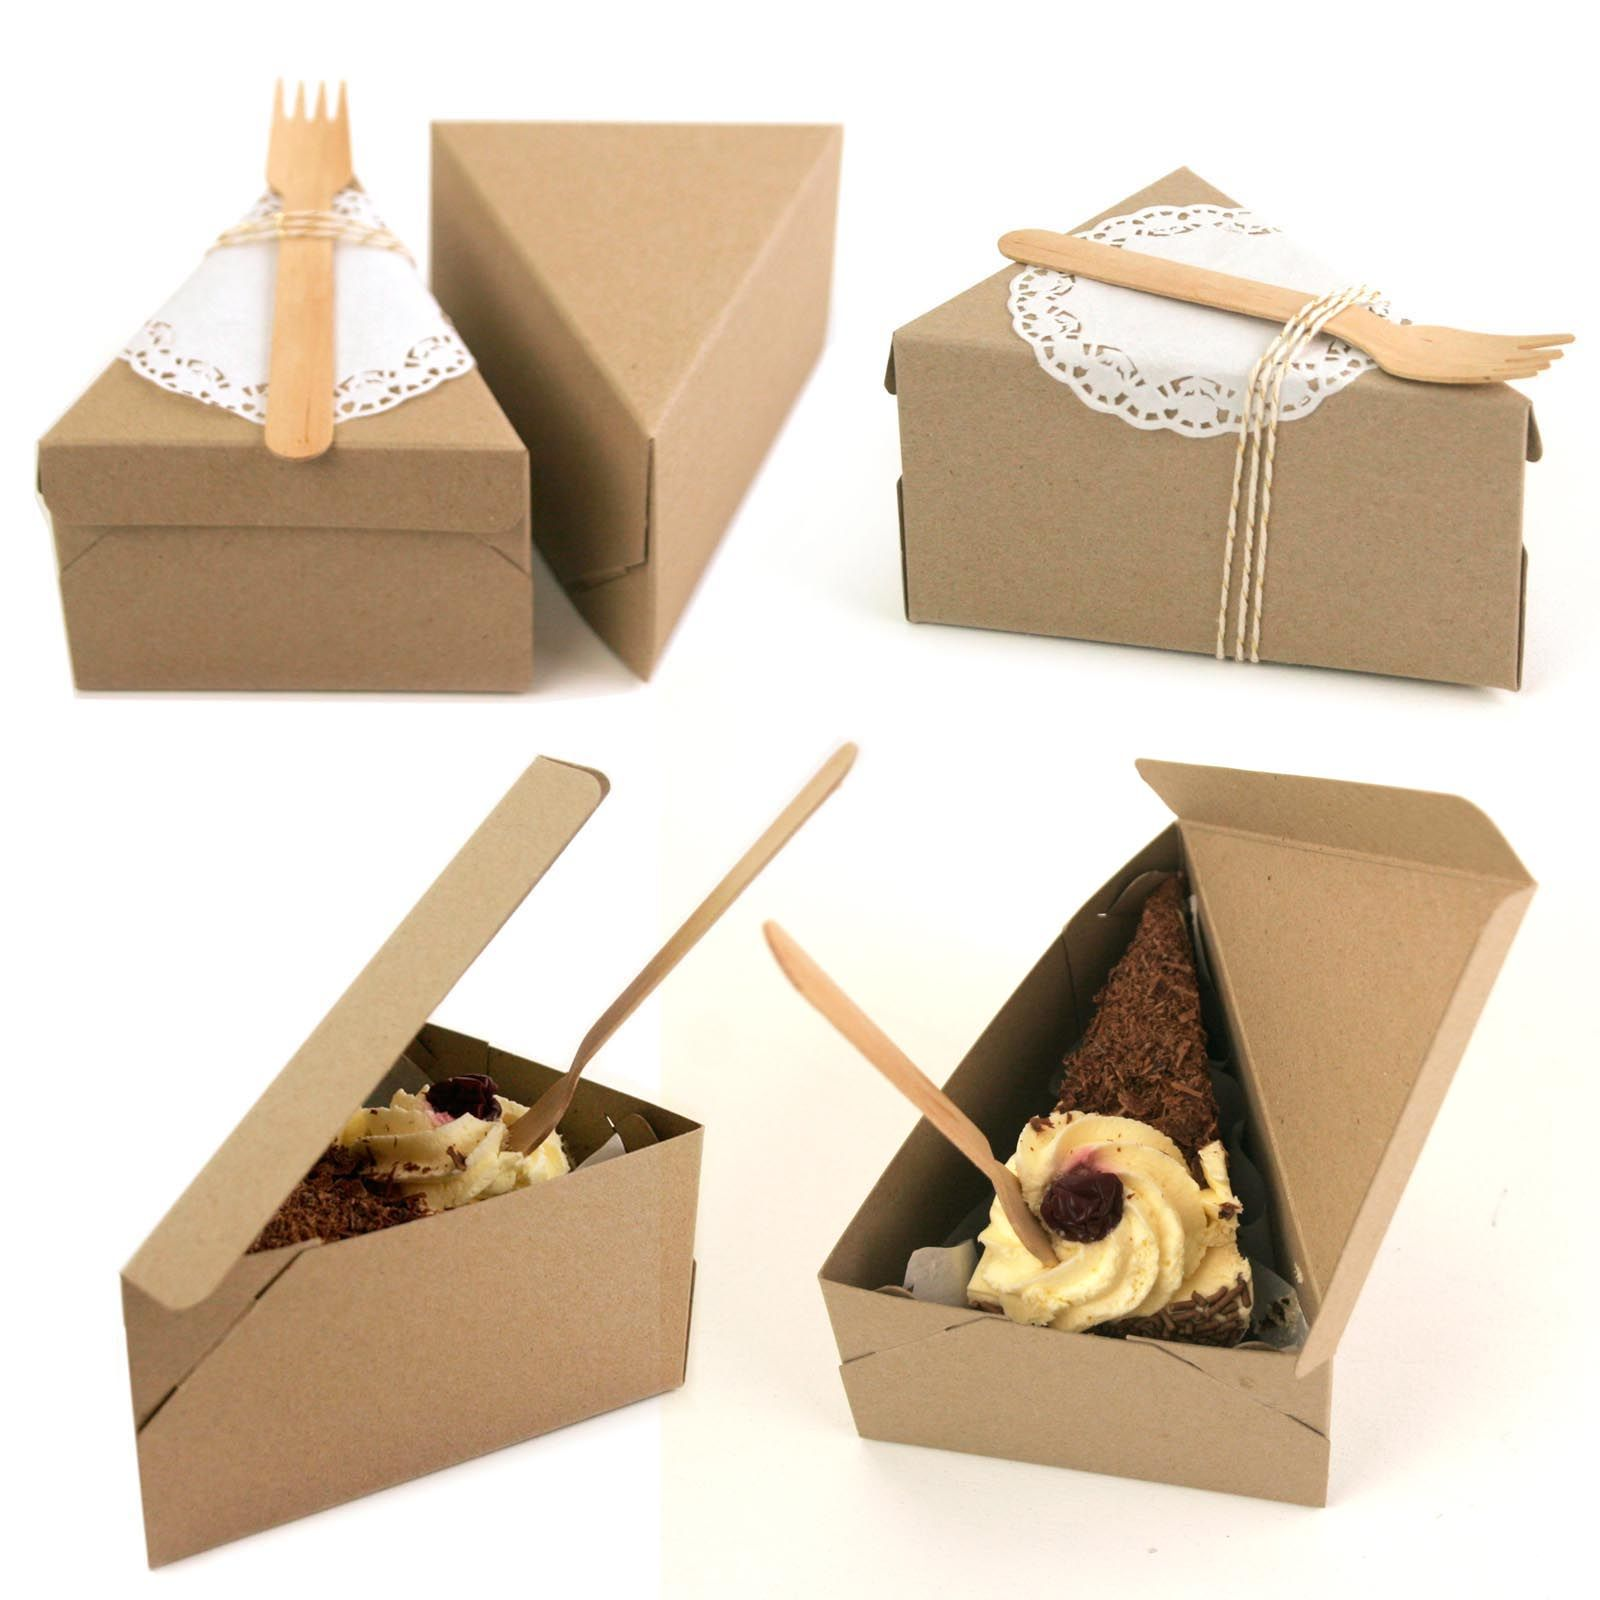 Cake Slice Boxes Available From Www.theprettybaker.co.nz